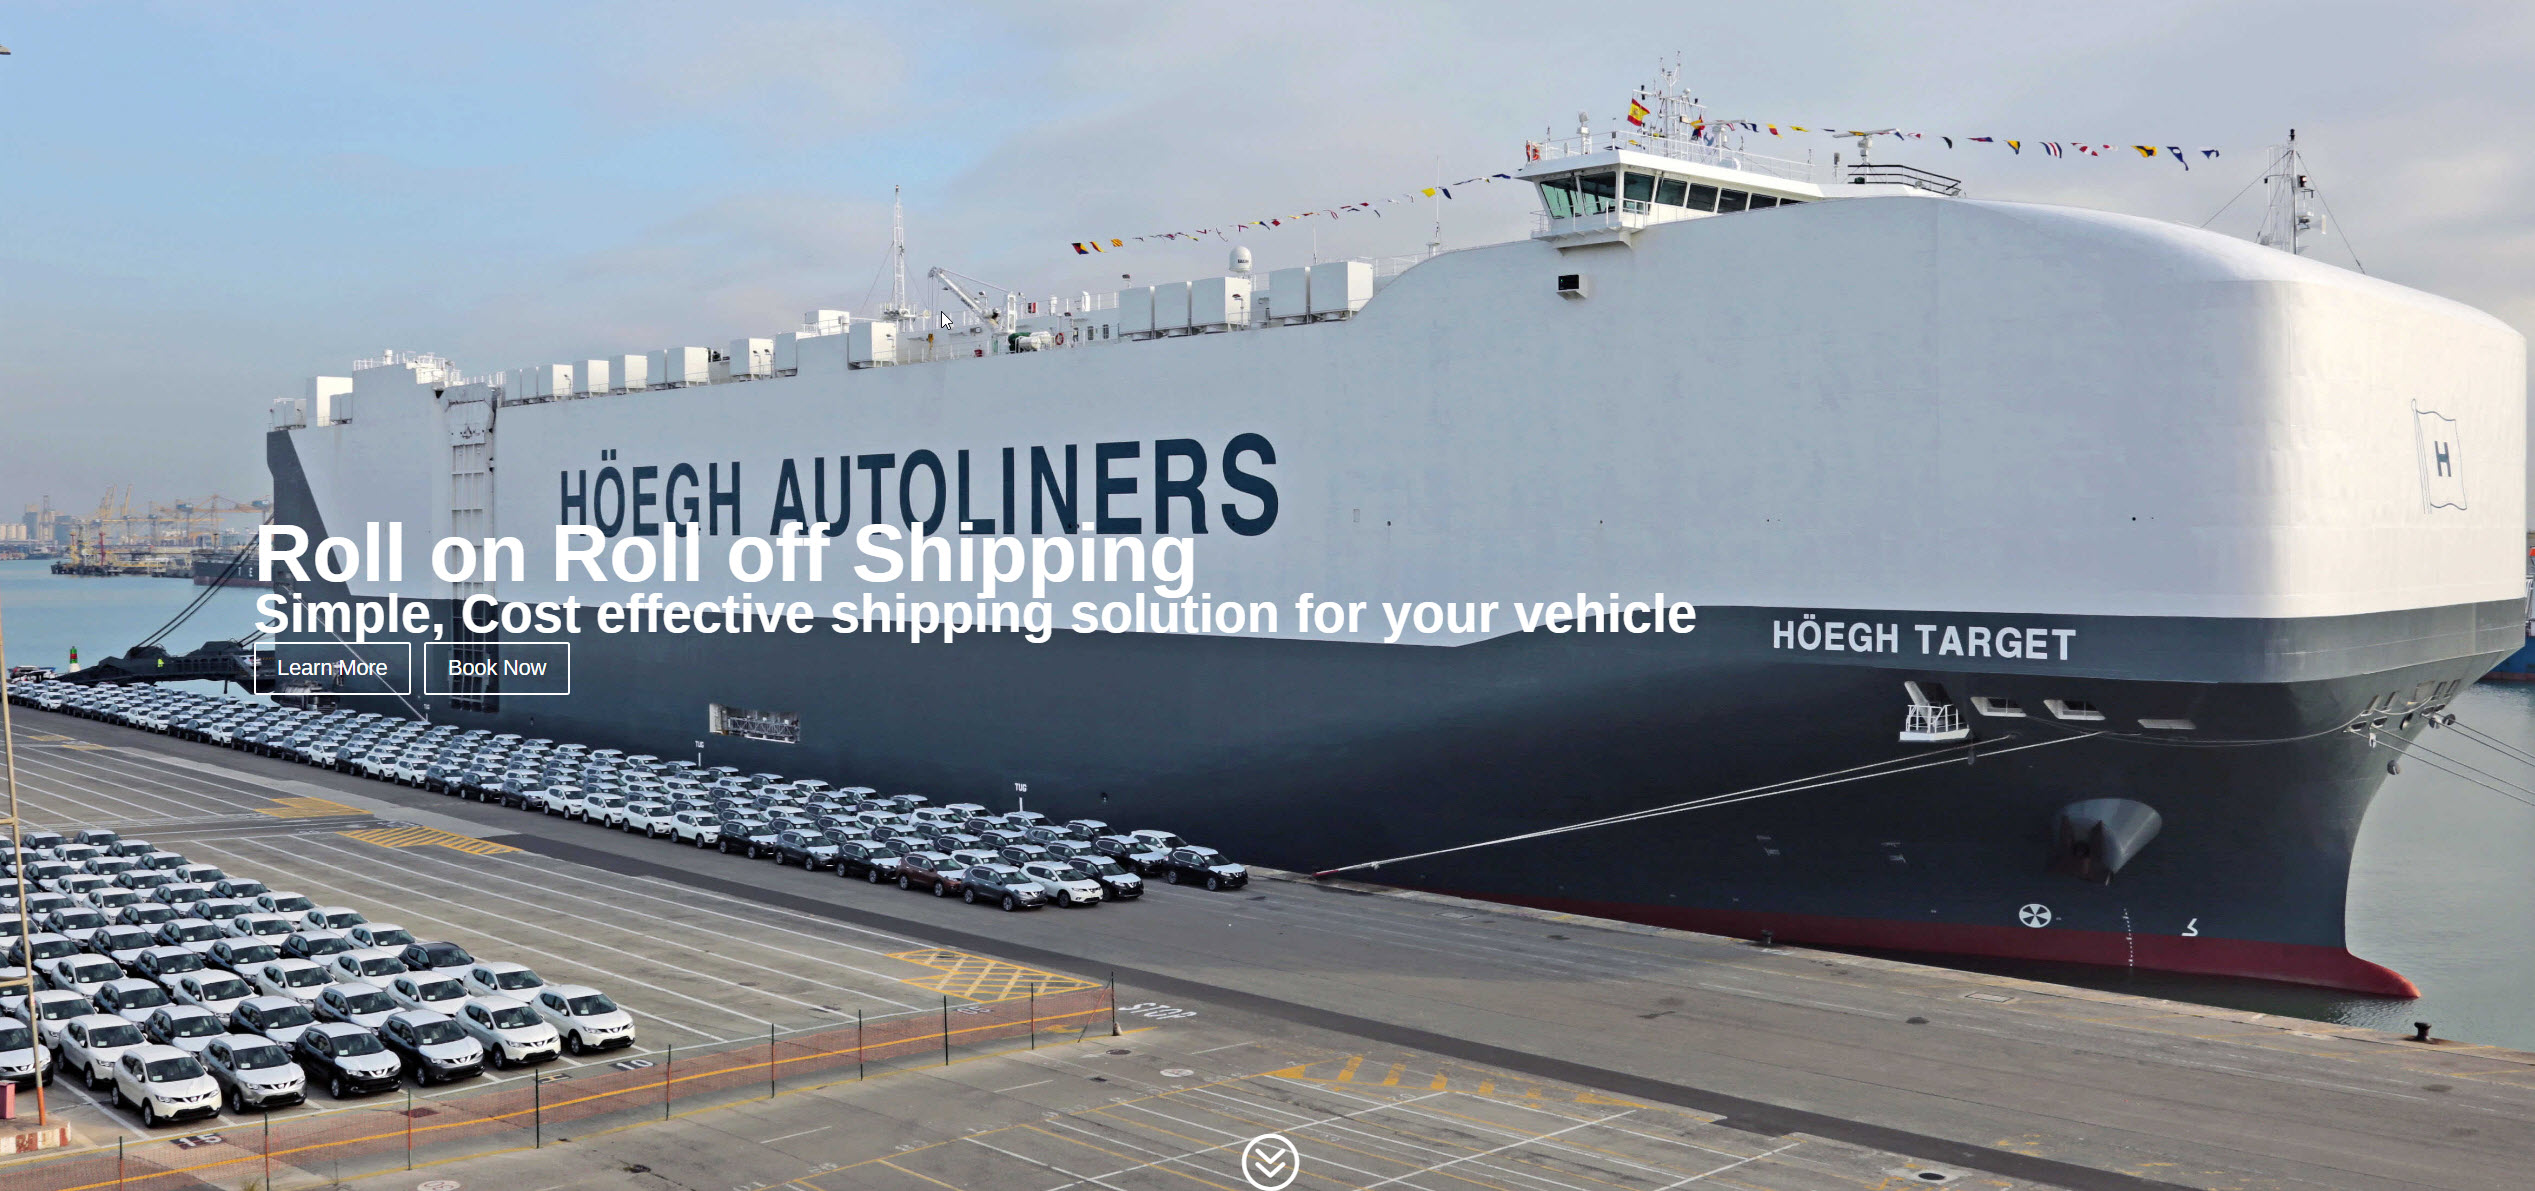 Roll On Roll Off Shipping (RORO)